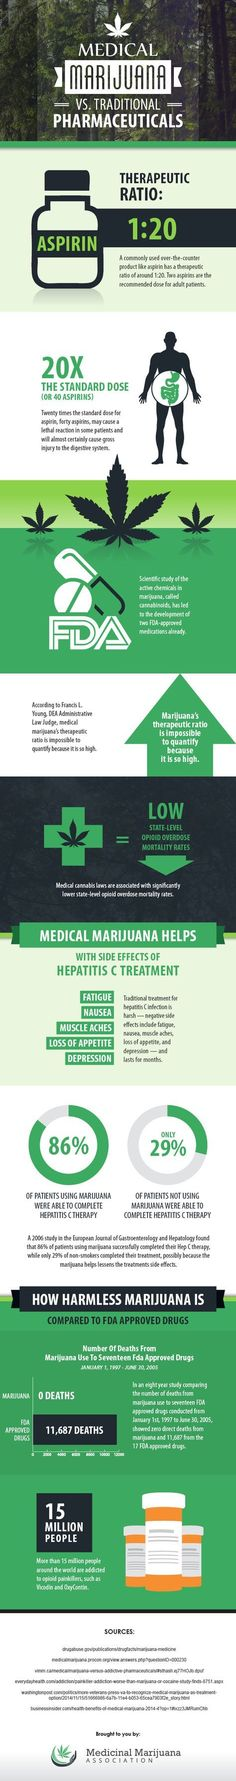 Cannabis Infographic- Medical Marijuana vs Traditional Pharmaceuticals. How They Stack Up. Jail big pharma profiteers snd decriminalize marijuana! Support HR1227! Call your house rep now!